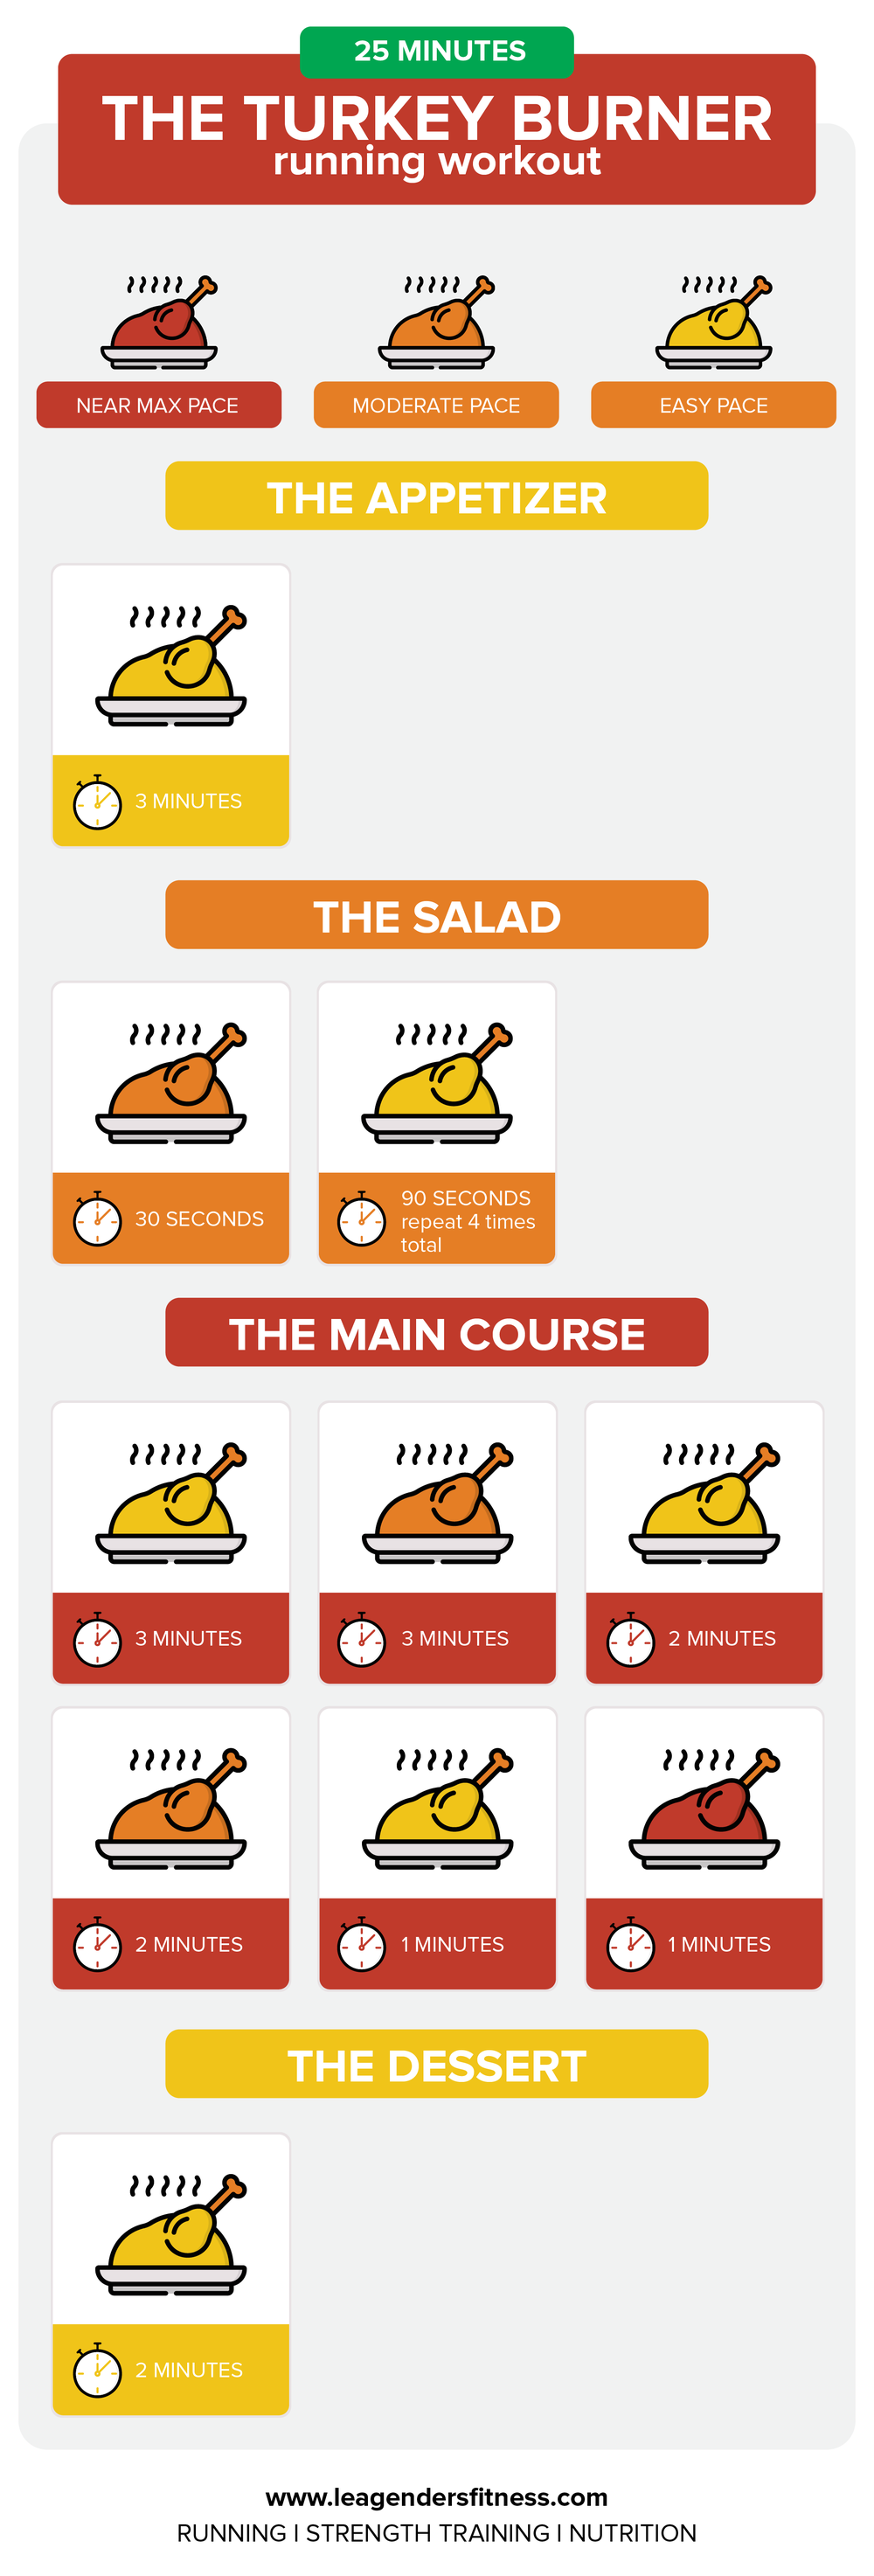 The turkey burner running workout. Save to your favorite Pinterest running board for later.